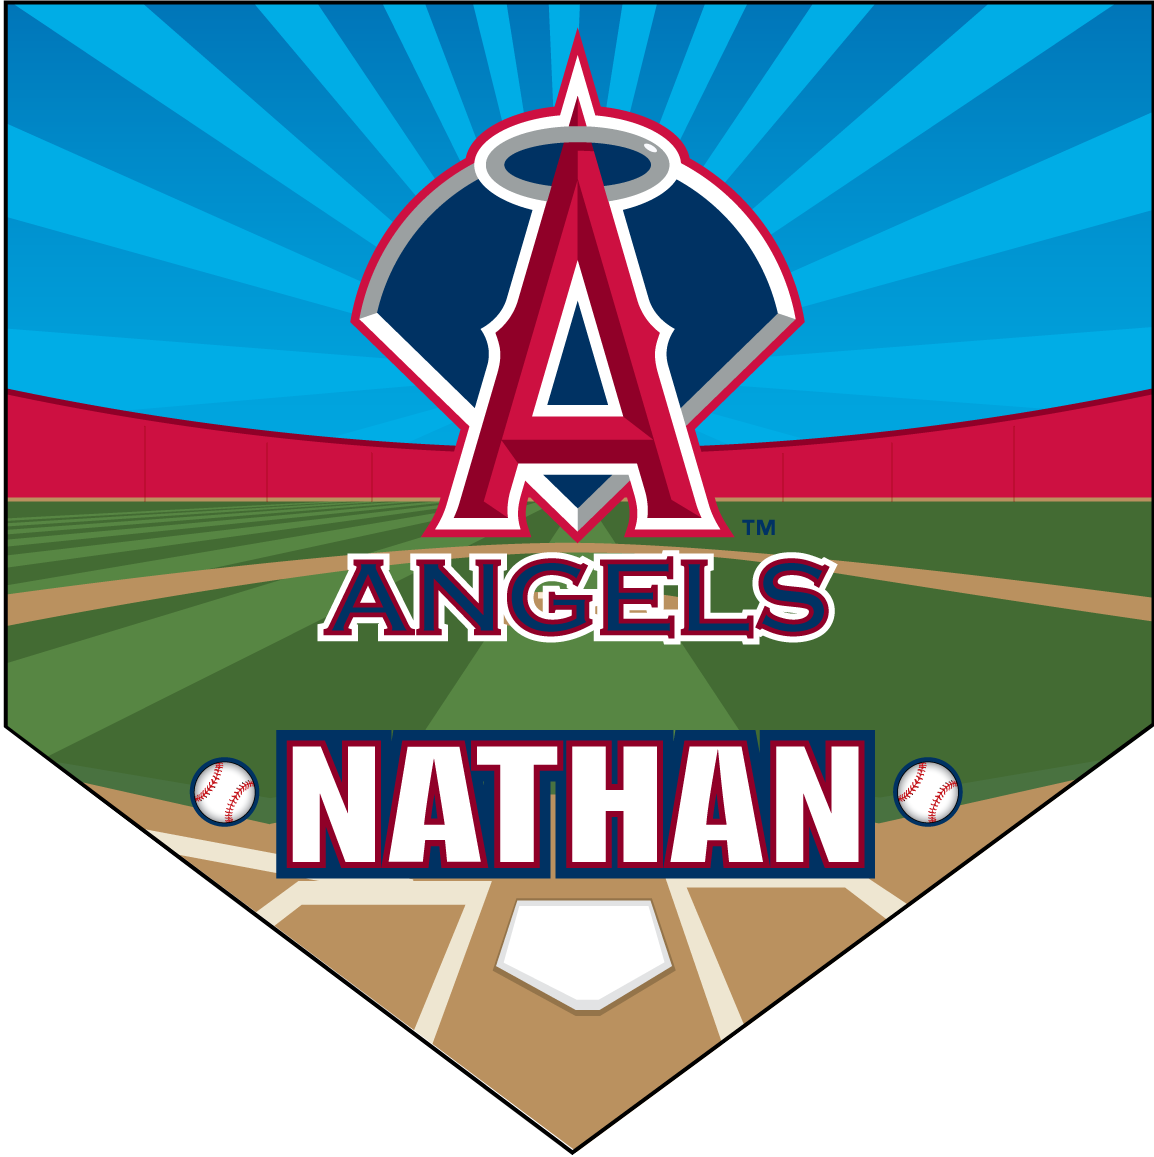 Baseball pennant clipart png vector transparent stock Angels Home Plate Individual Team Pennant - Custom Baseball ... vector transparent stock